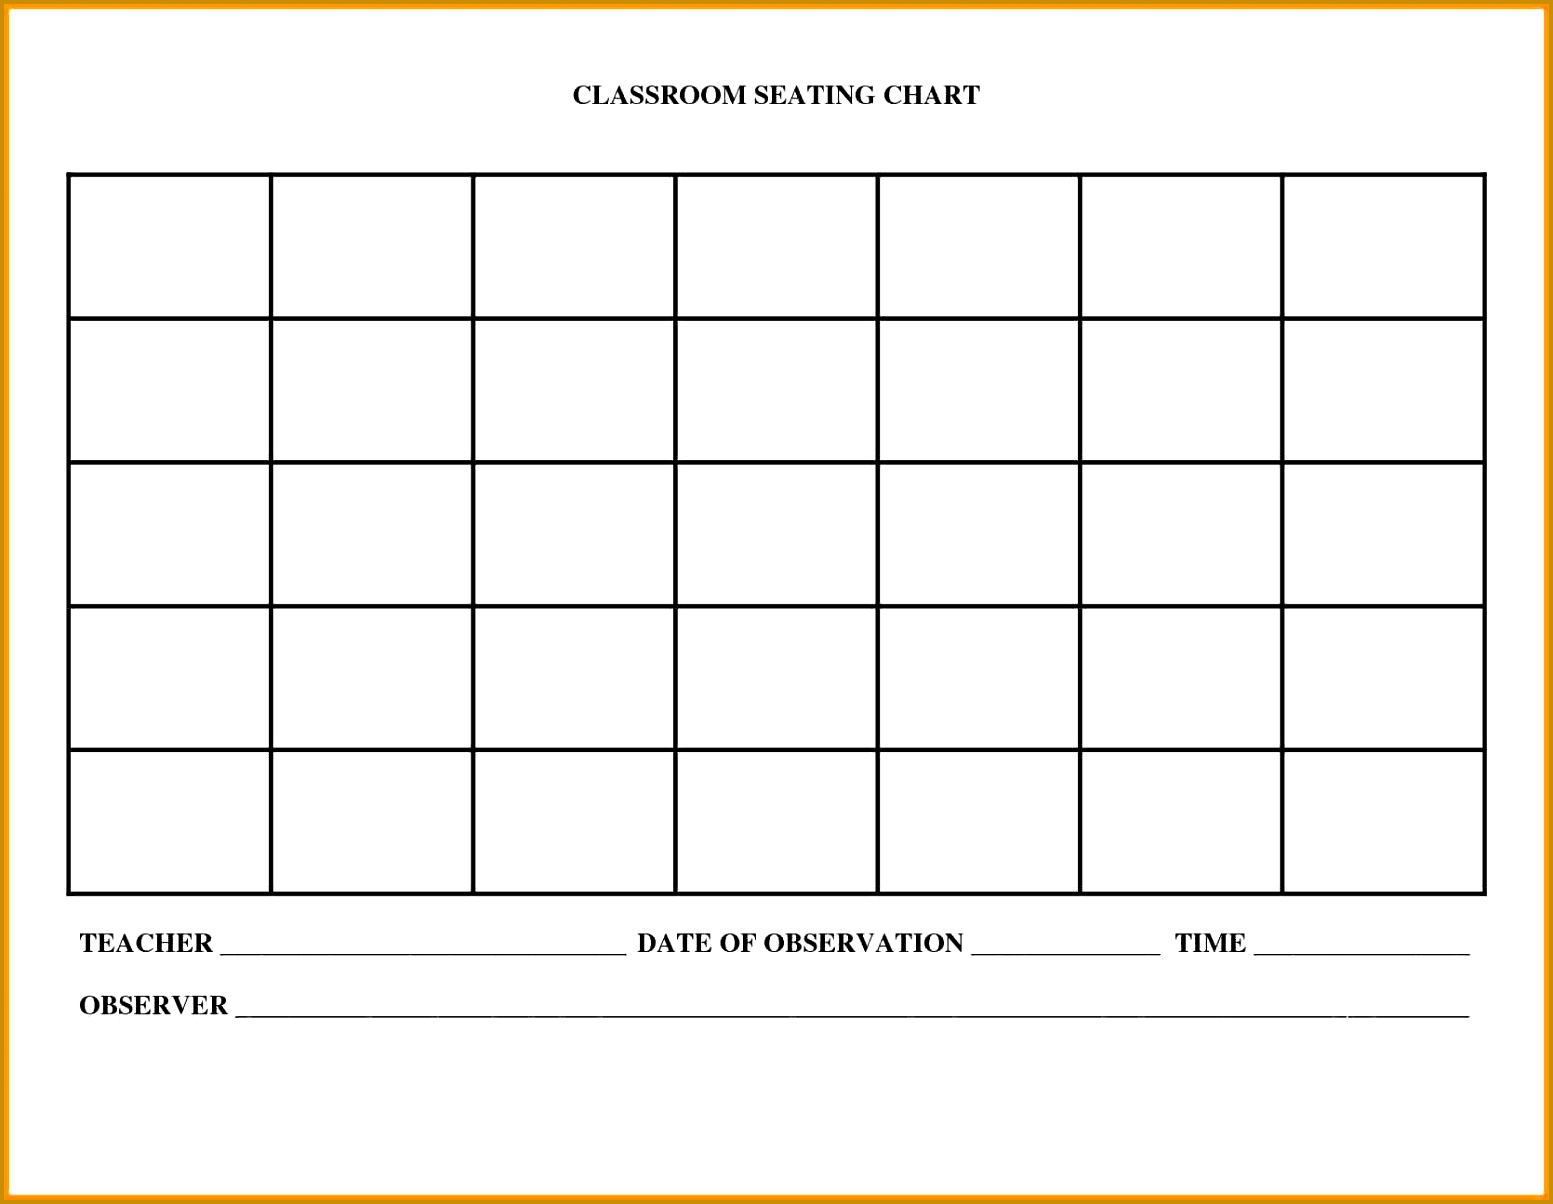 Seating Chart Classroom Template Free Downloadable Basic 12041553